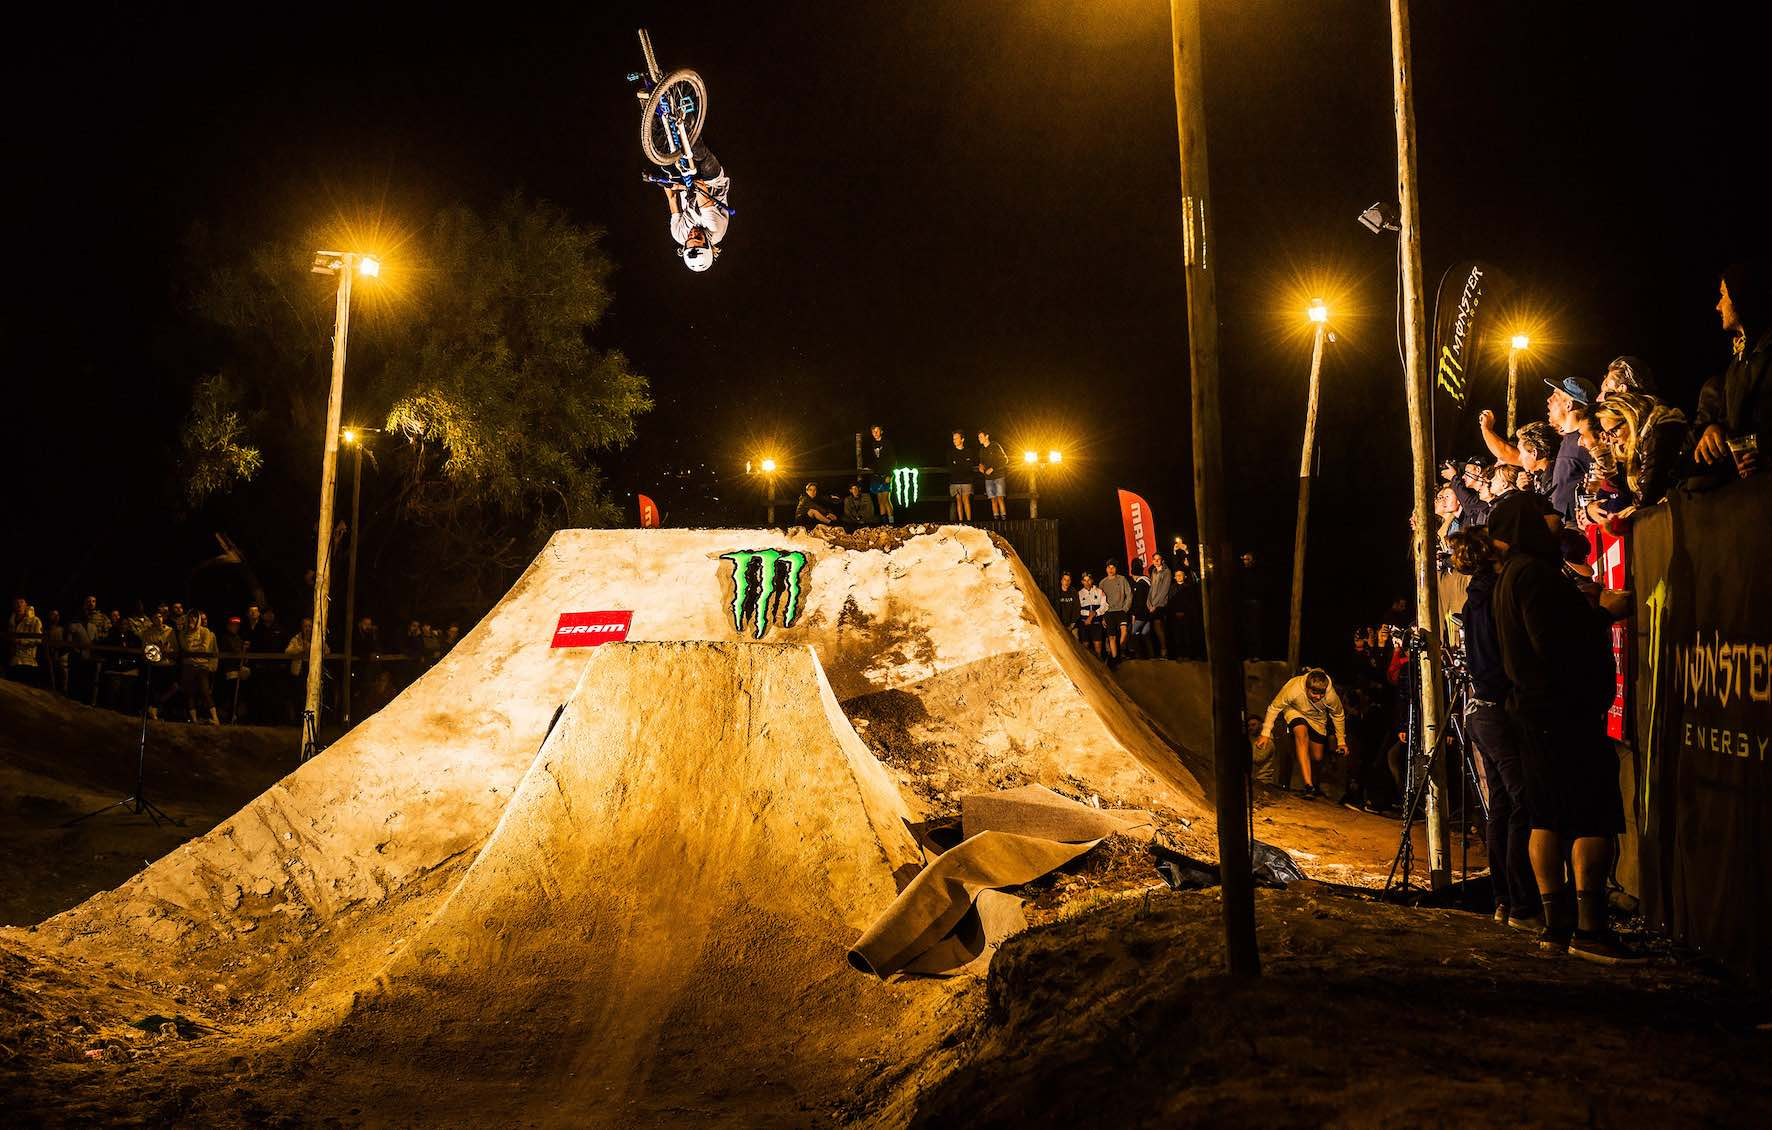 Tomas Zedja taking 3rd place in The Night Harvest 2019 MTB dirt jump contest